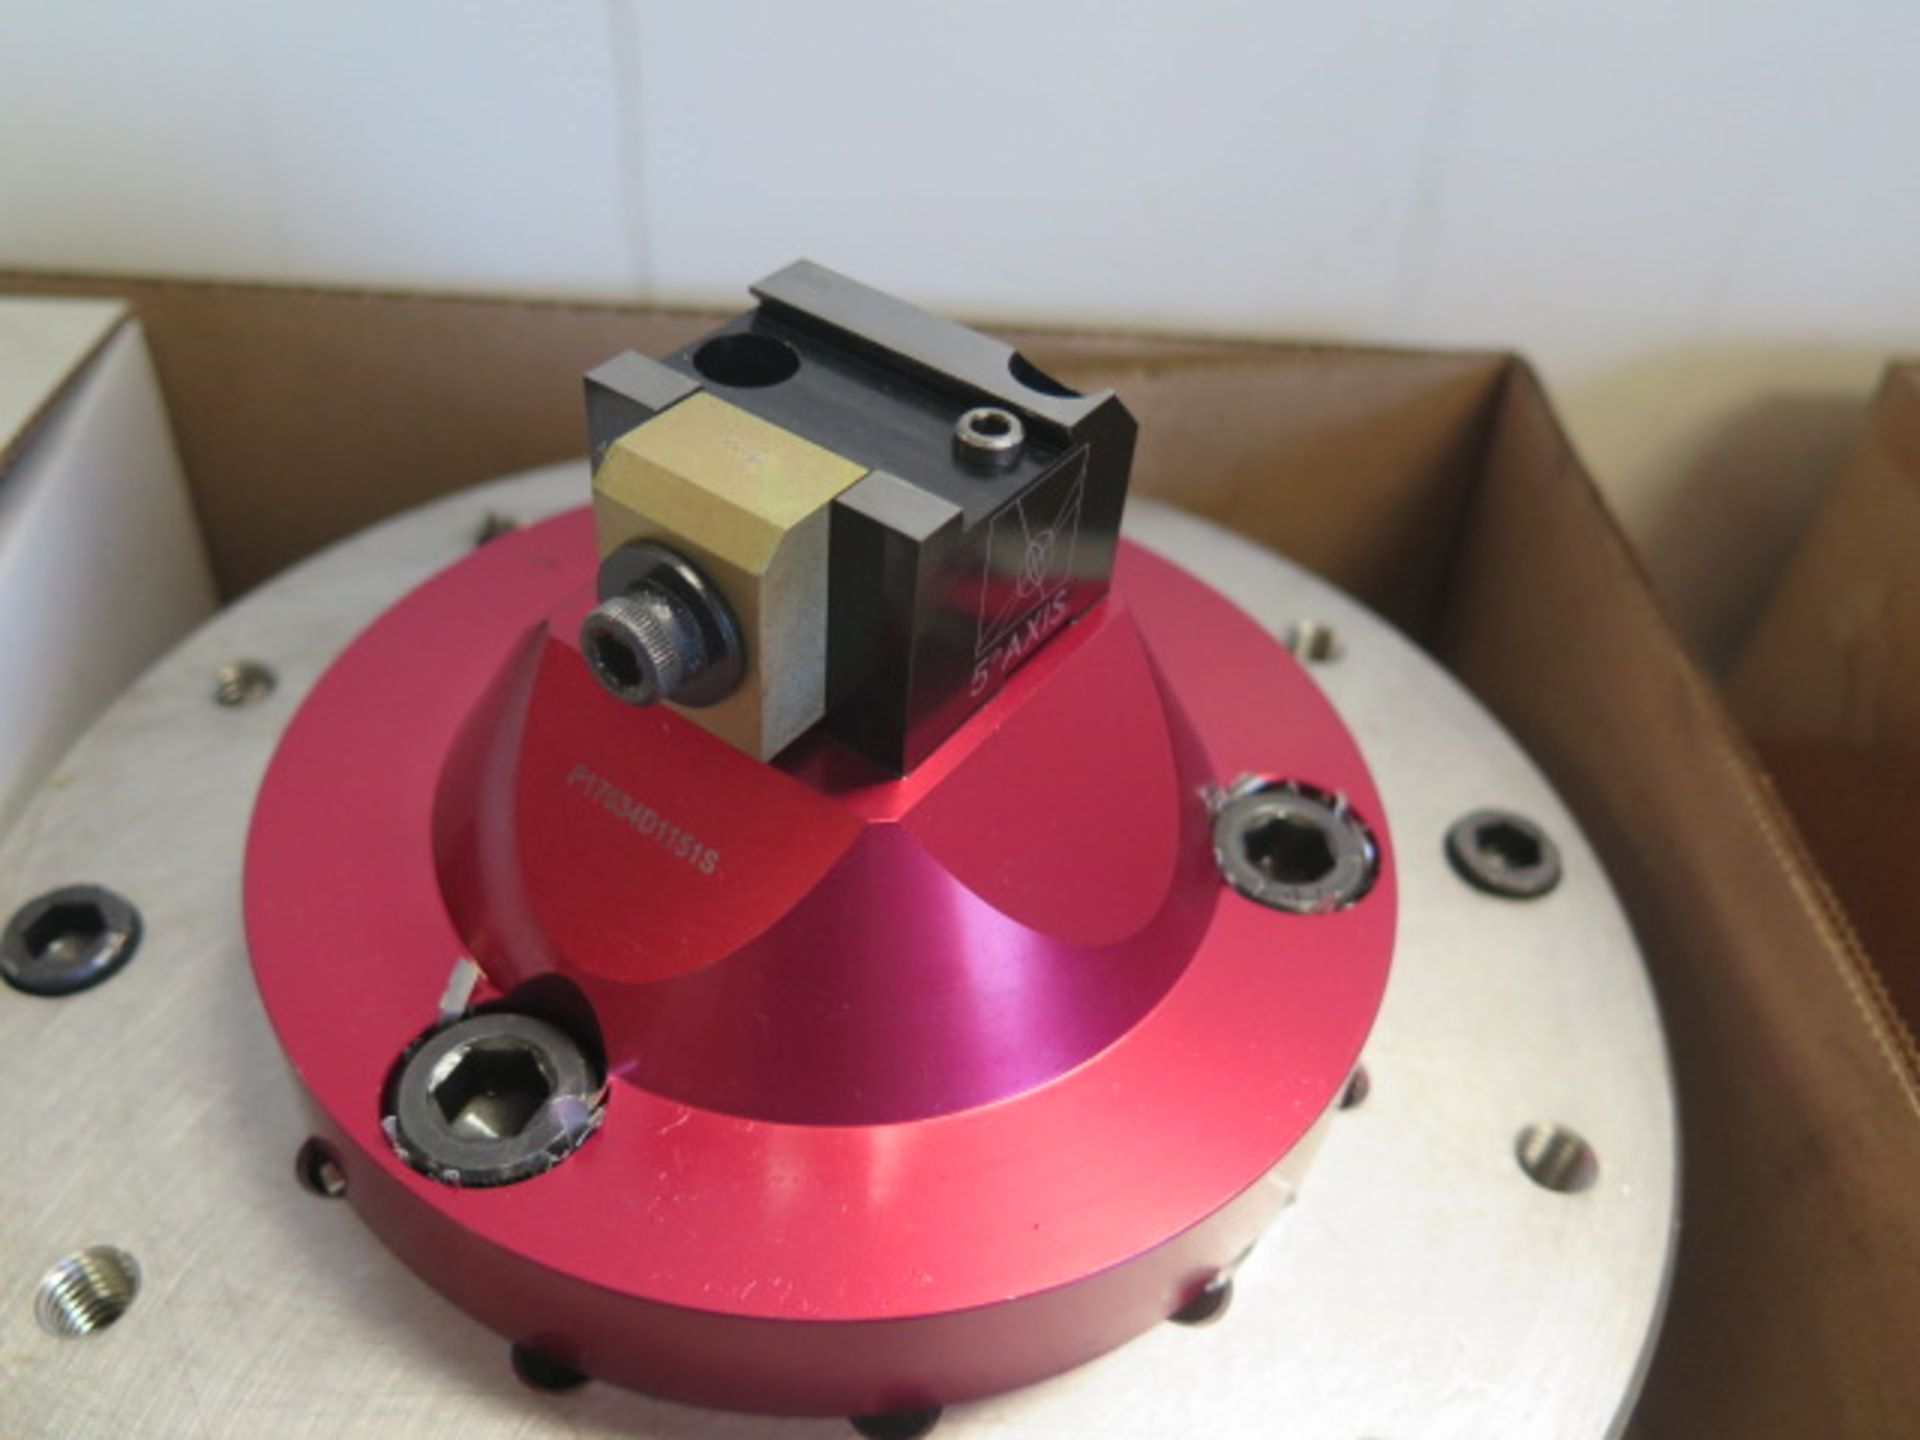 5th Axis Fixtures Micro Vise w/ Mounting Plate (SOLD AS-IS - NO WARRANTY) - Image 3 of 5